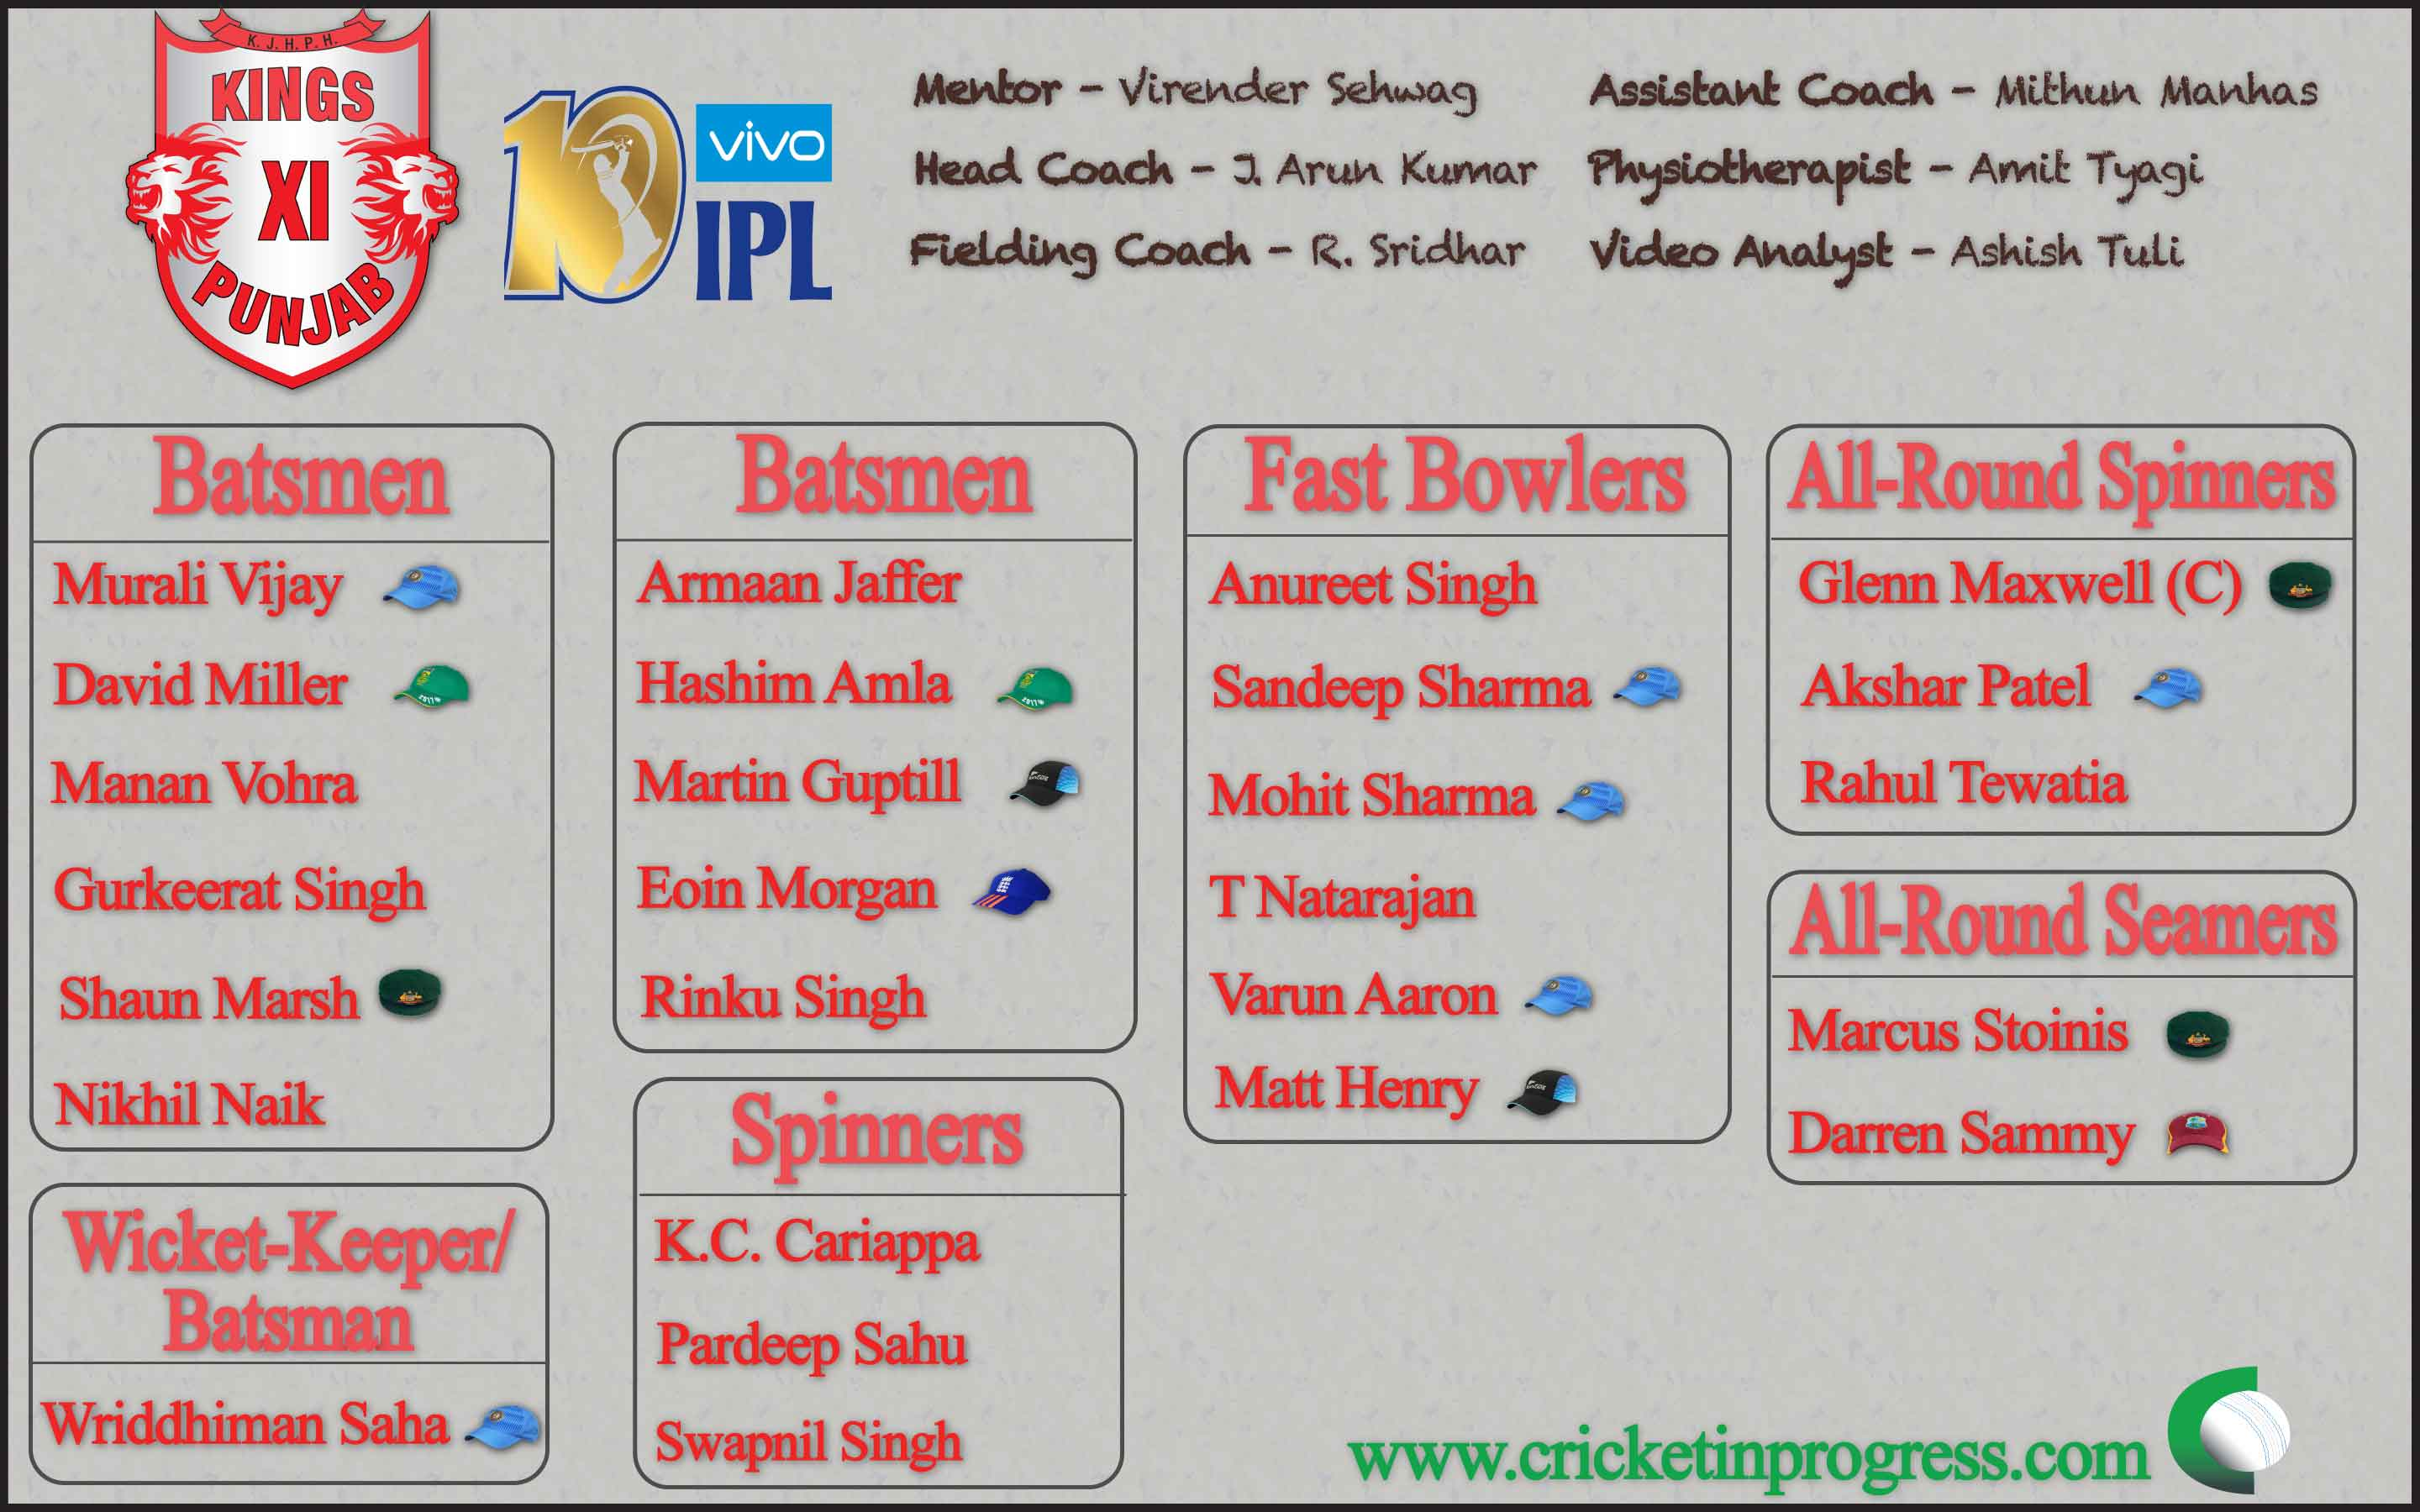 Kings XI Punjab Roster